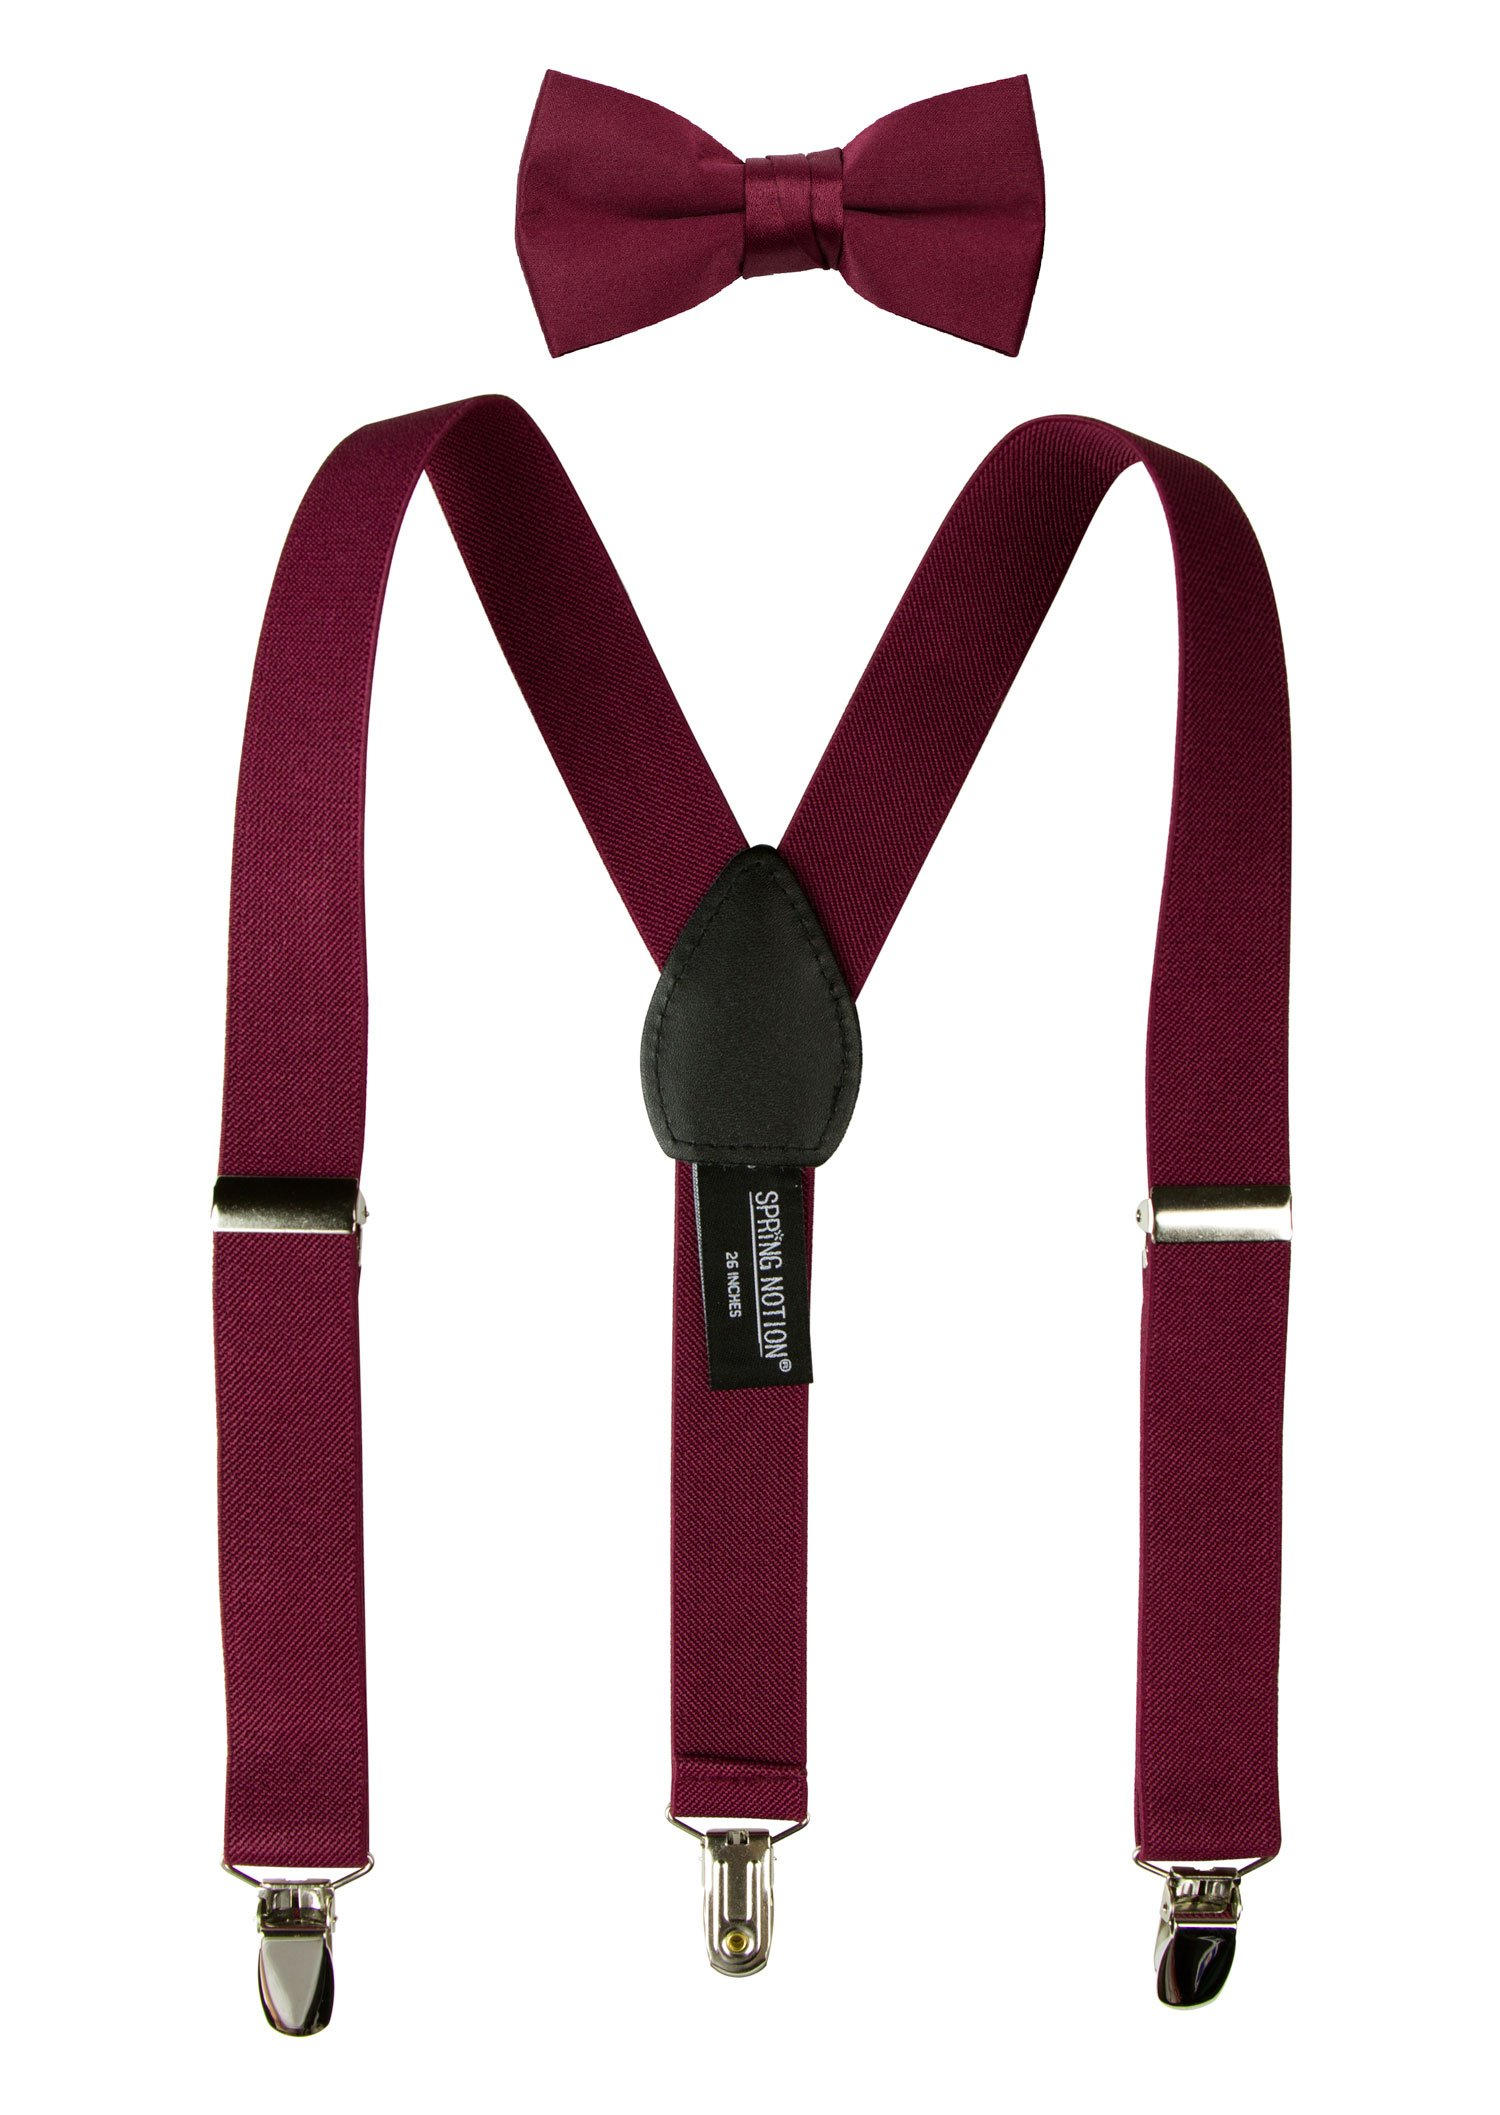 Spring Notion Boys' Suspenders and Solid Color Bowtie Set Burgundy Medium